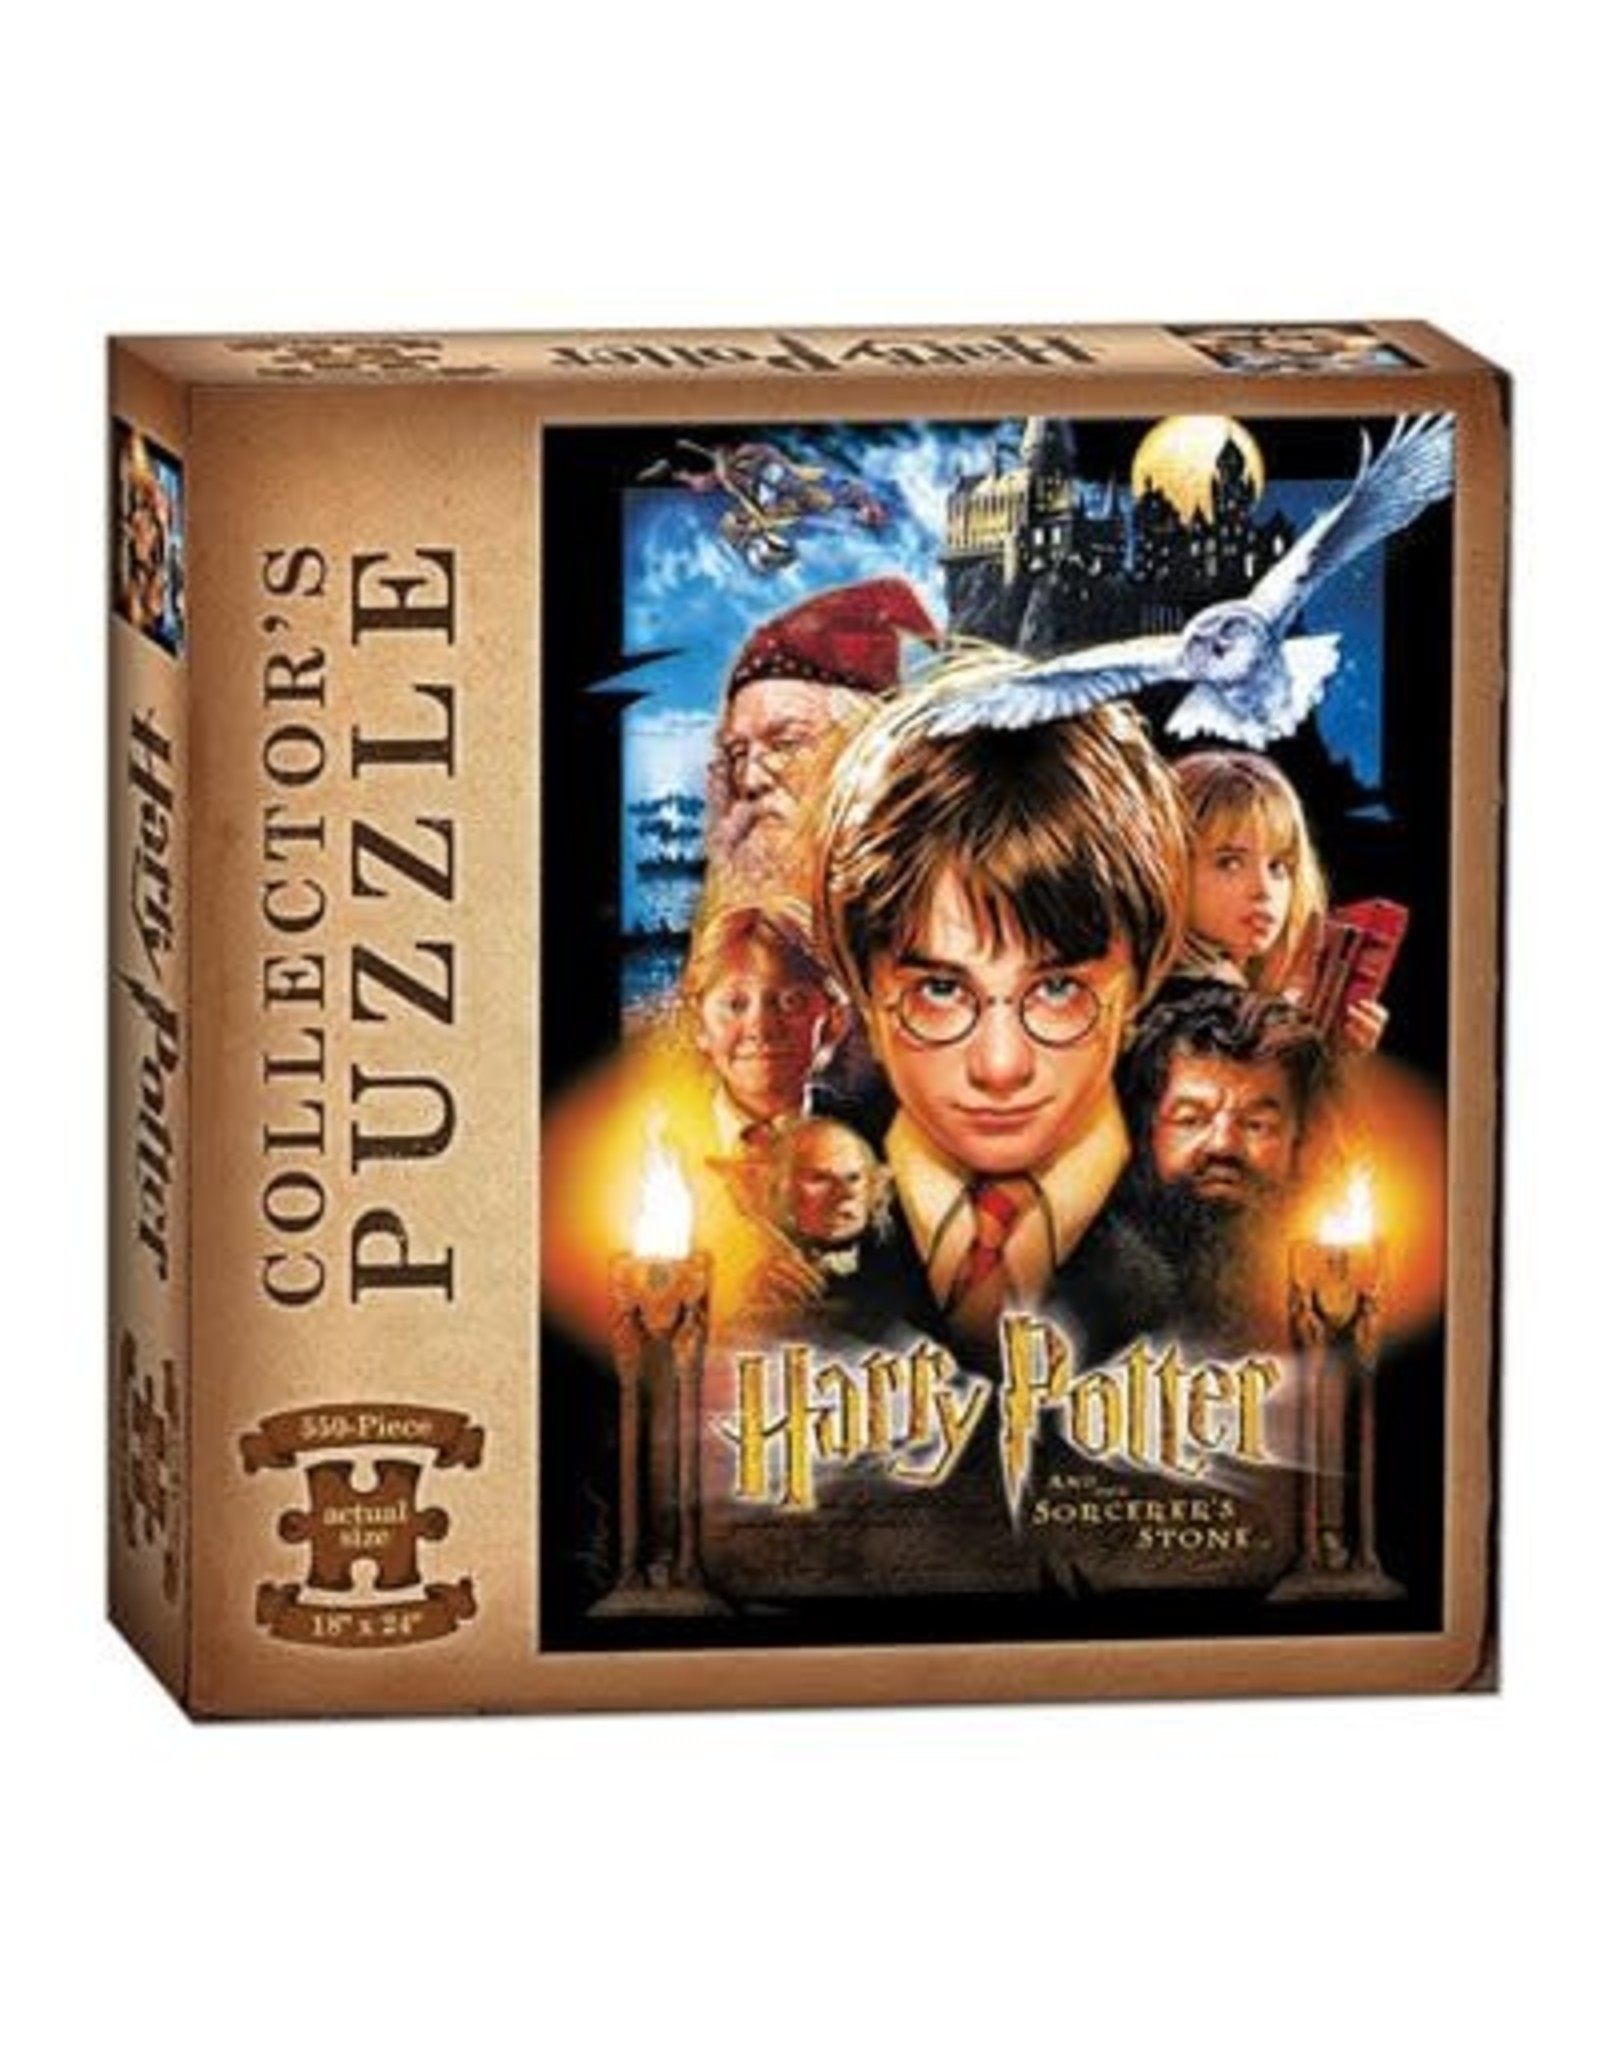 USAopoly Harry Potter and the Sorcerer's Stone 550 Piece Puzzle